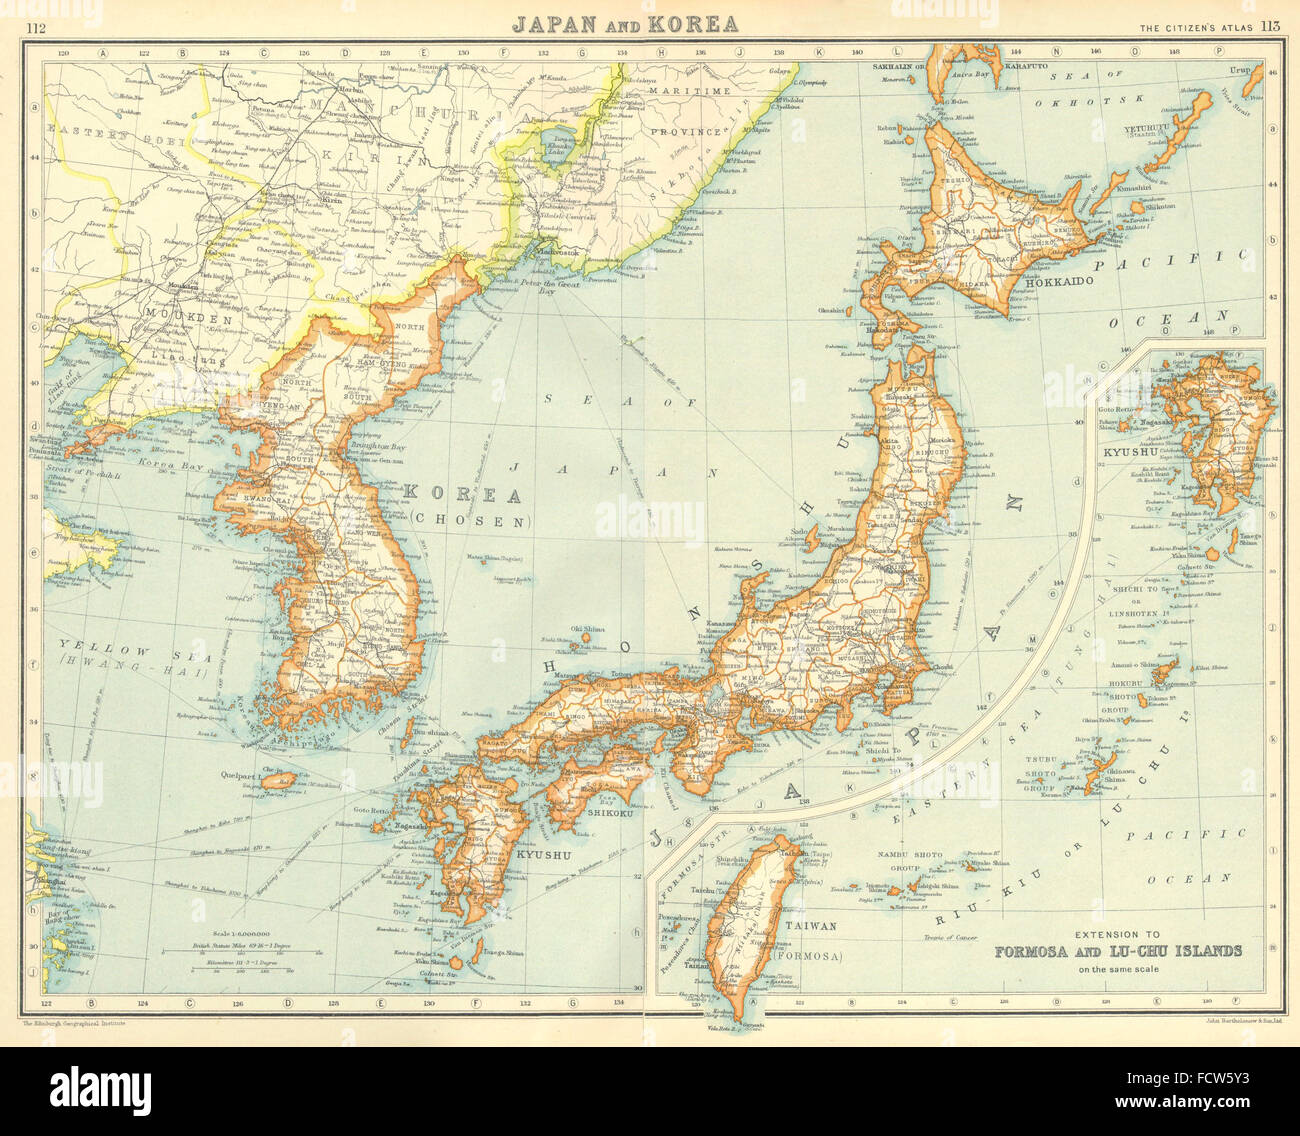 Japanese world map stock photos japanese world map stock images japanese empire japan its possessions incl korea formosa taiwan 1924 map gumiabroncs Gallery